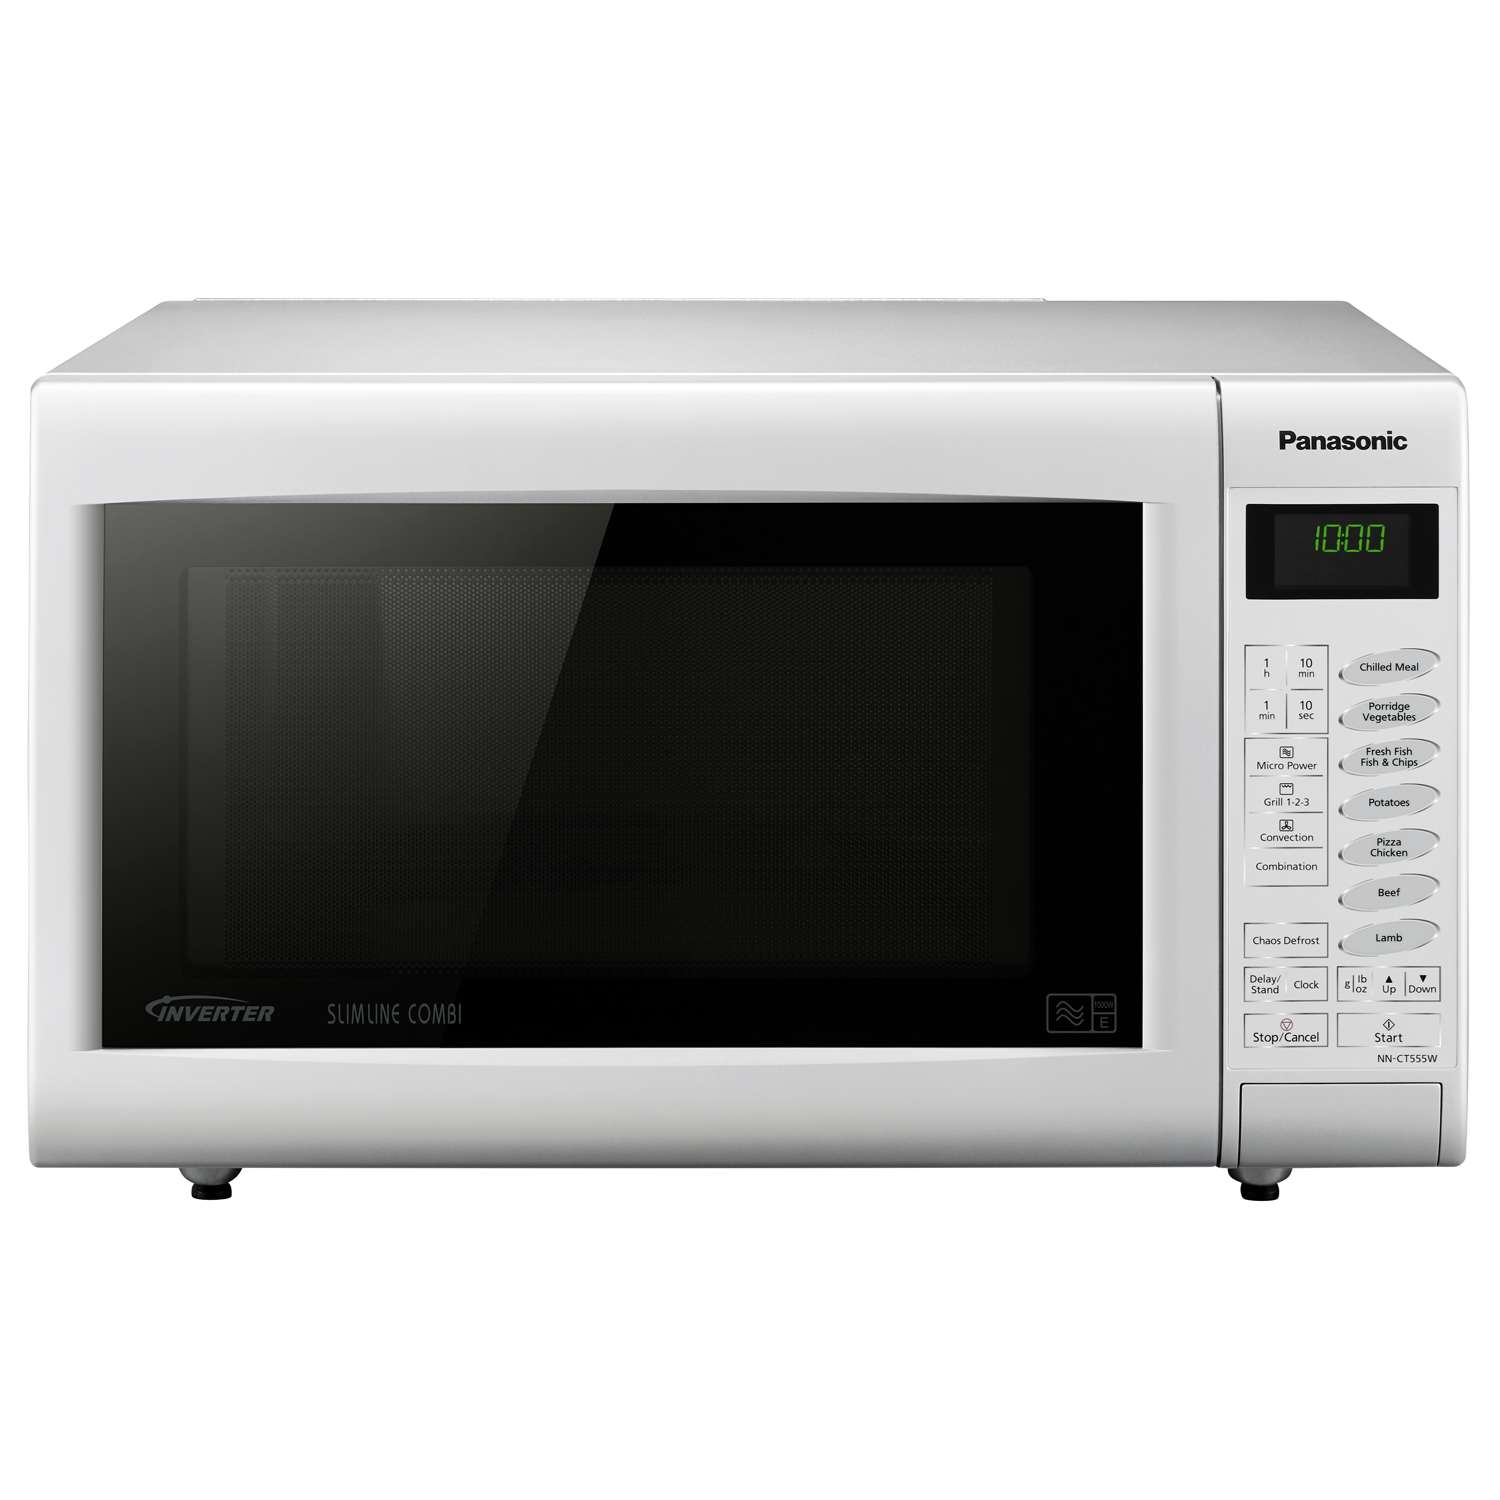 Panasonic NNCT555WBPQ Microwave Oven 1000W 27L White Combination